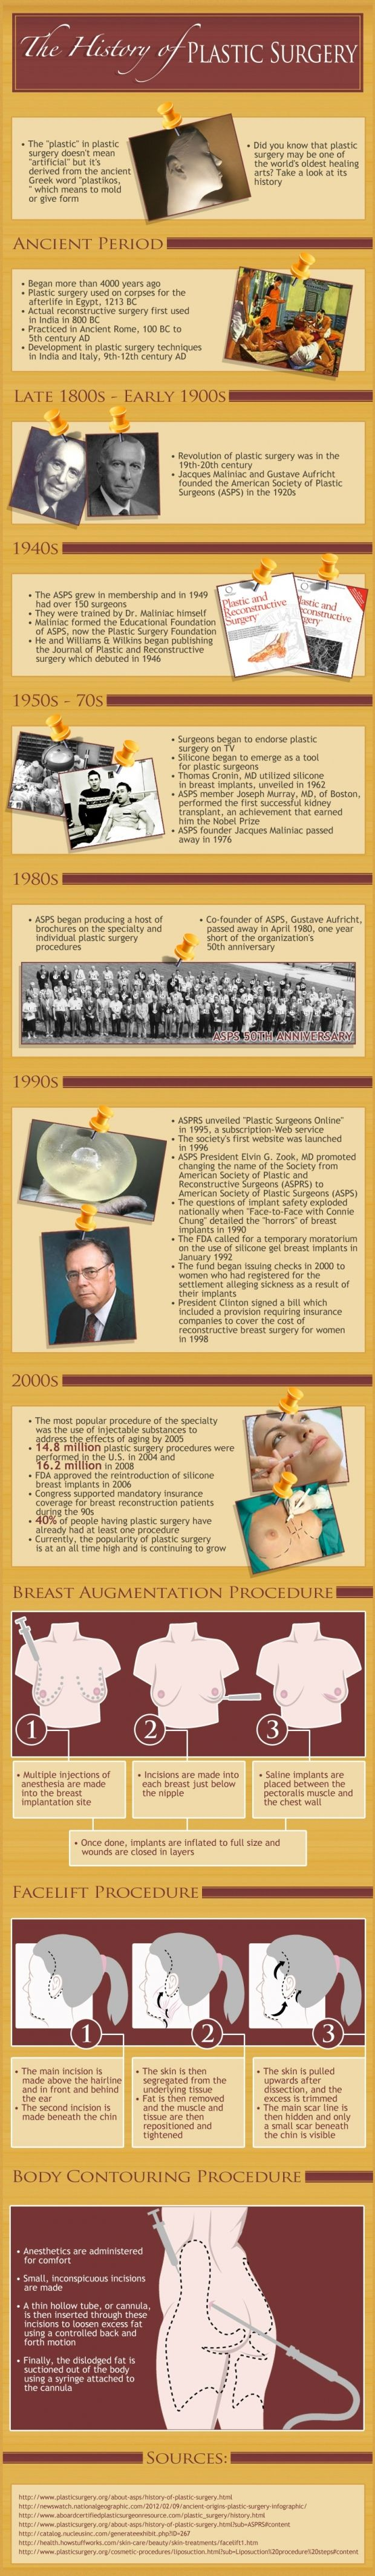 The-History-of-Plastic-Surgery-Infographic